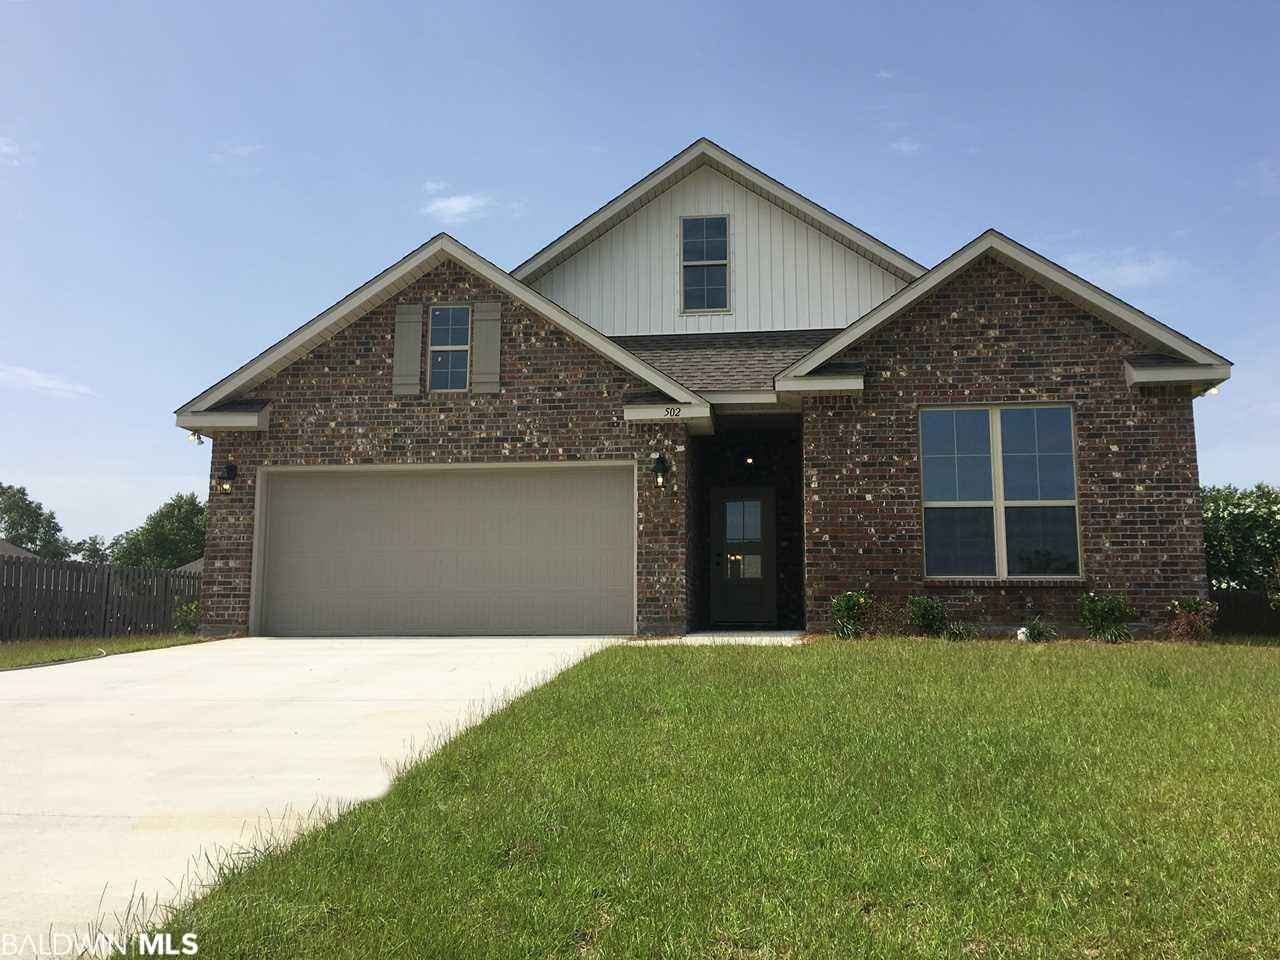 502 Orange Blossom Circle, Summerdale, AL 36580